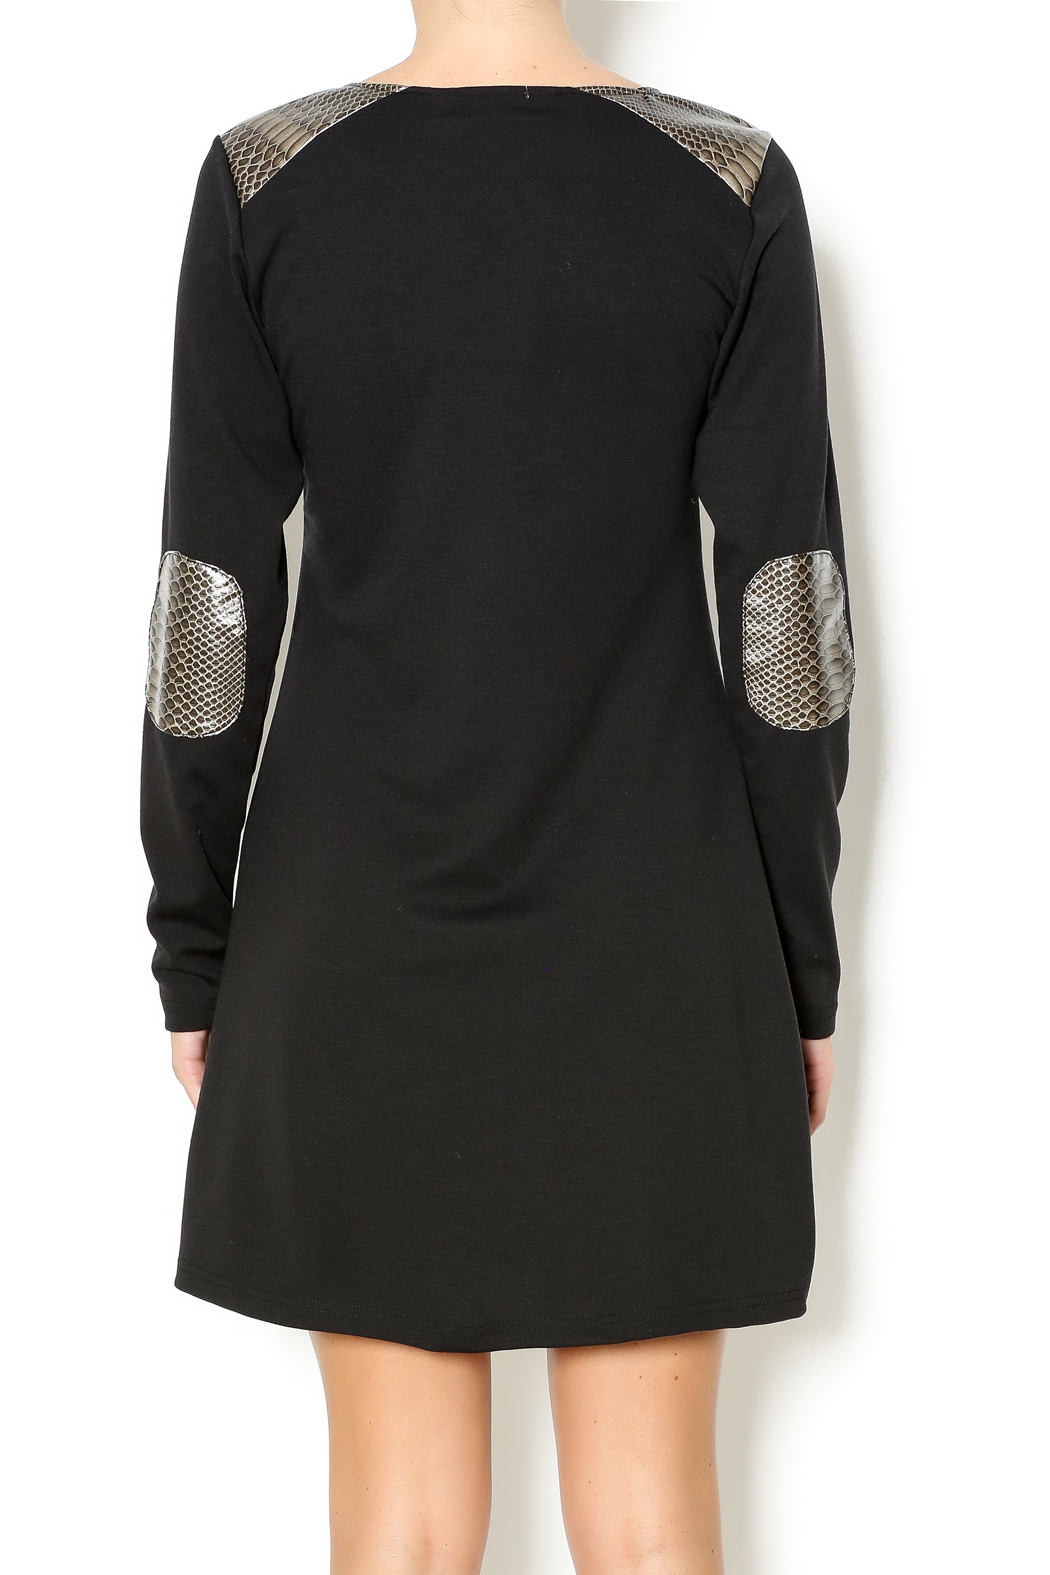 vFish designs Snakeskin Patch Dress - Main Image